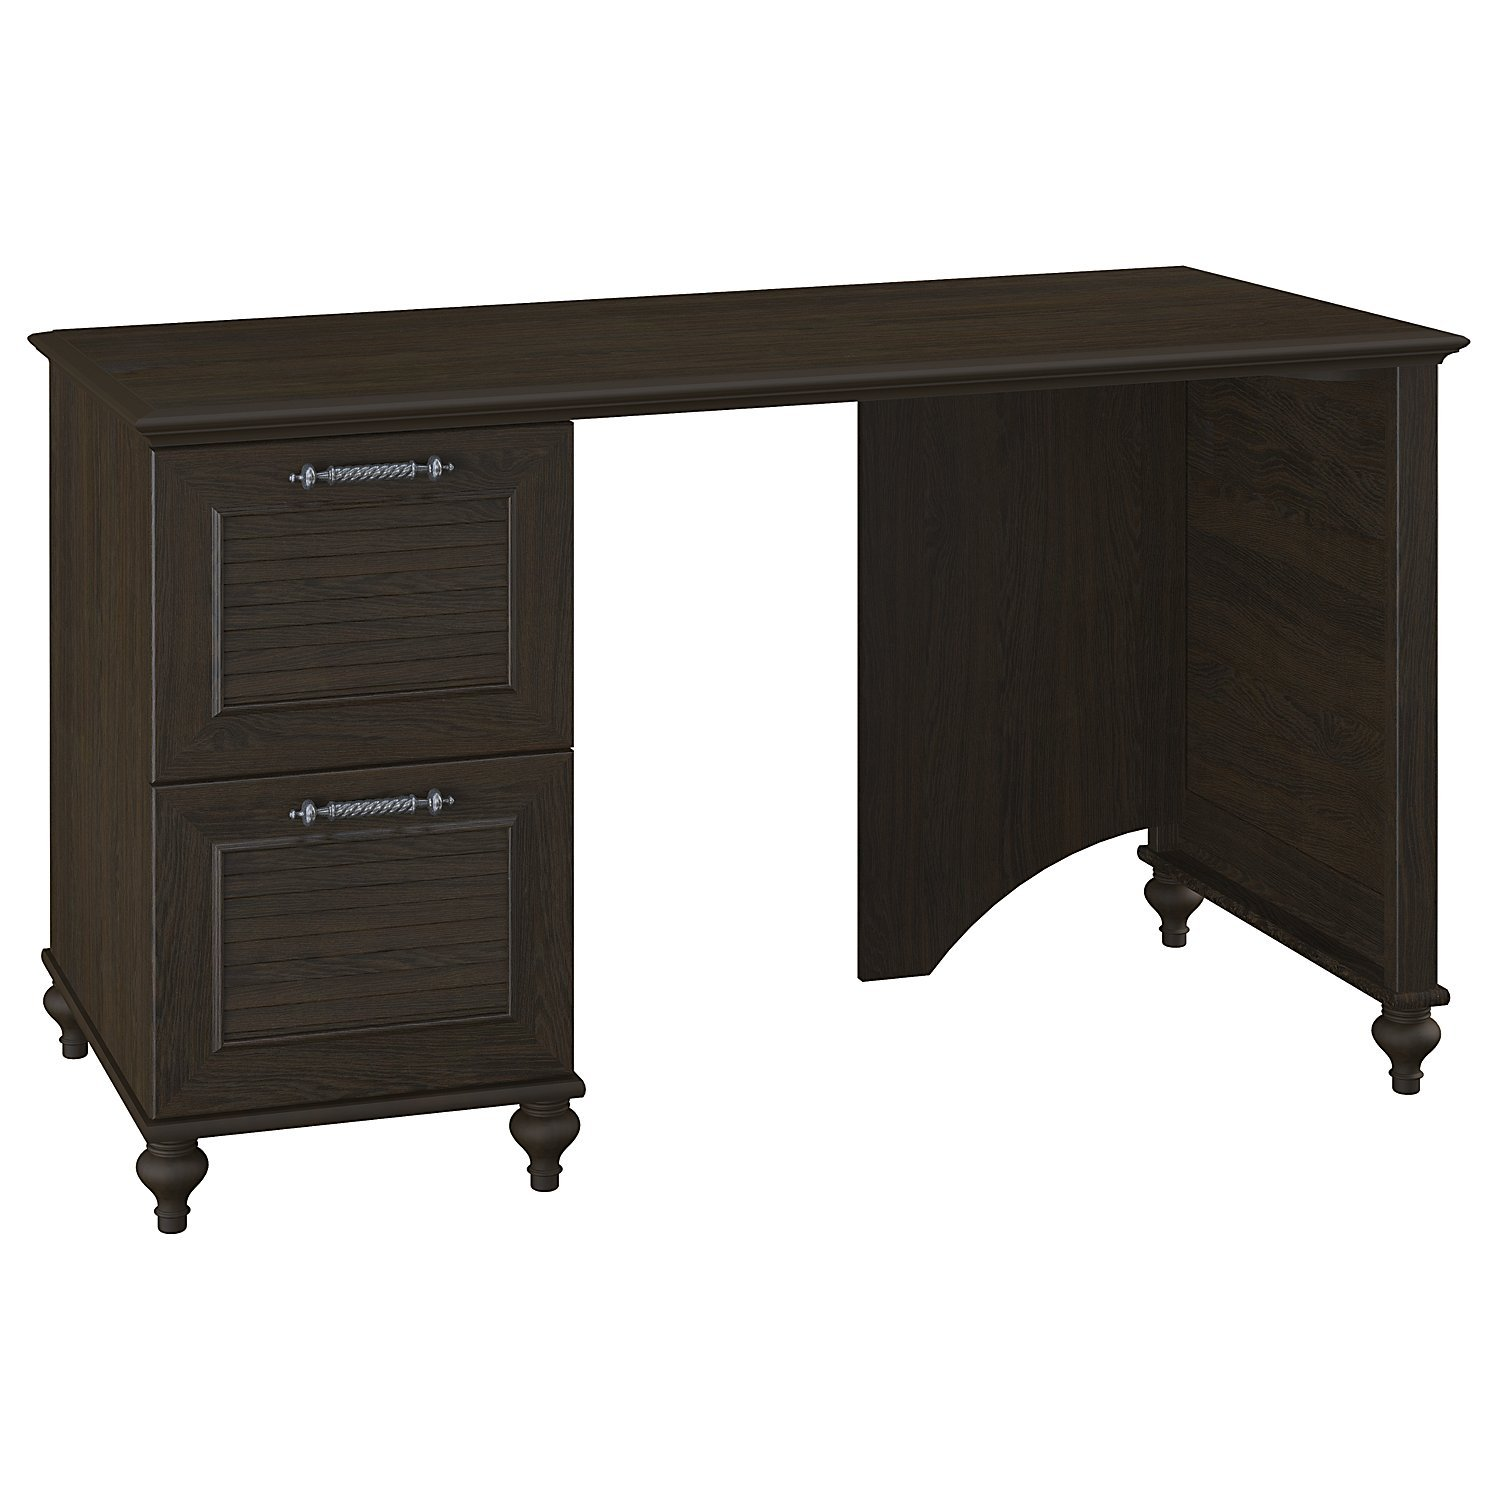 kathy ireland Office by Bush Furniture Volcano Dusk 51W Desk with Double File Drawers in Kona Coast